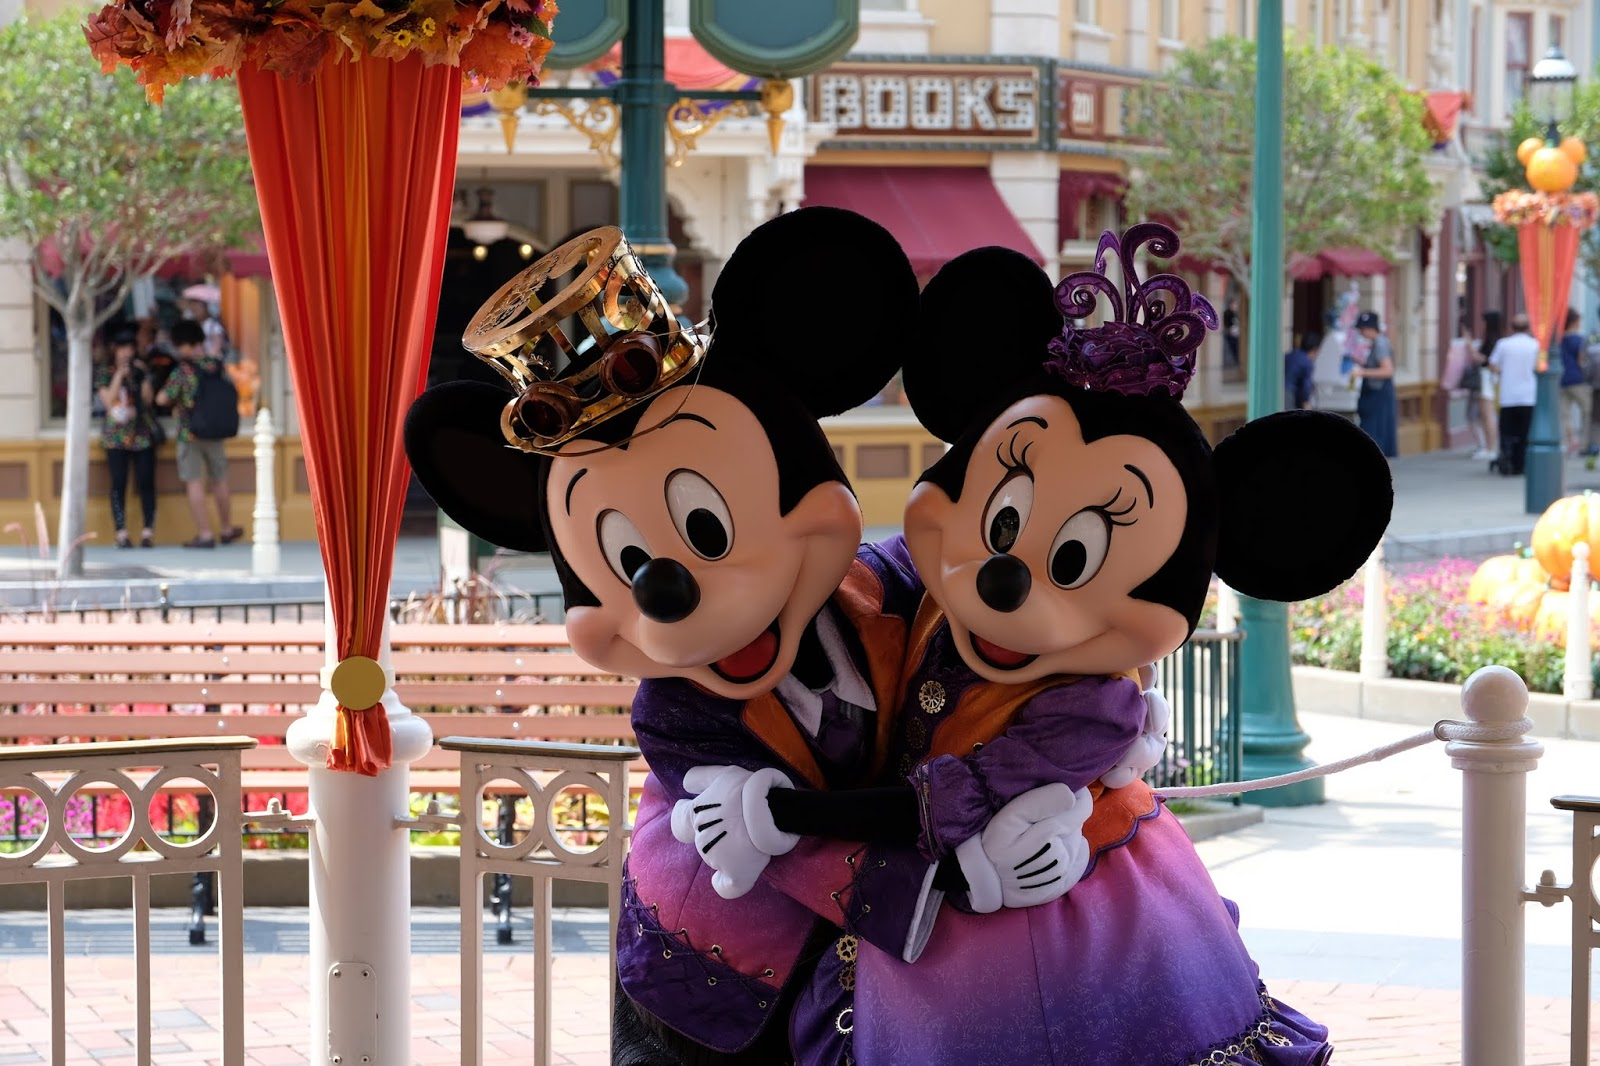 Mickey Mouse and Minnie Mouse in Halloween outfits at Hong Kong Disneyland